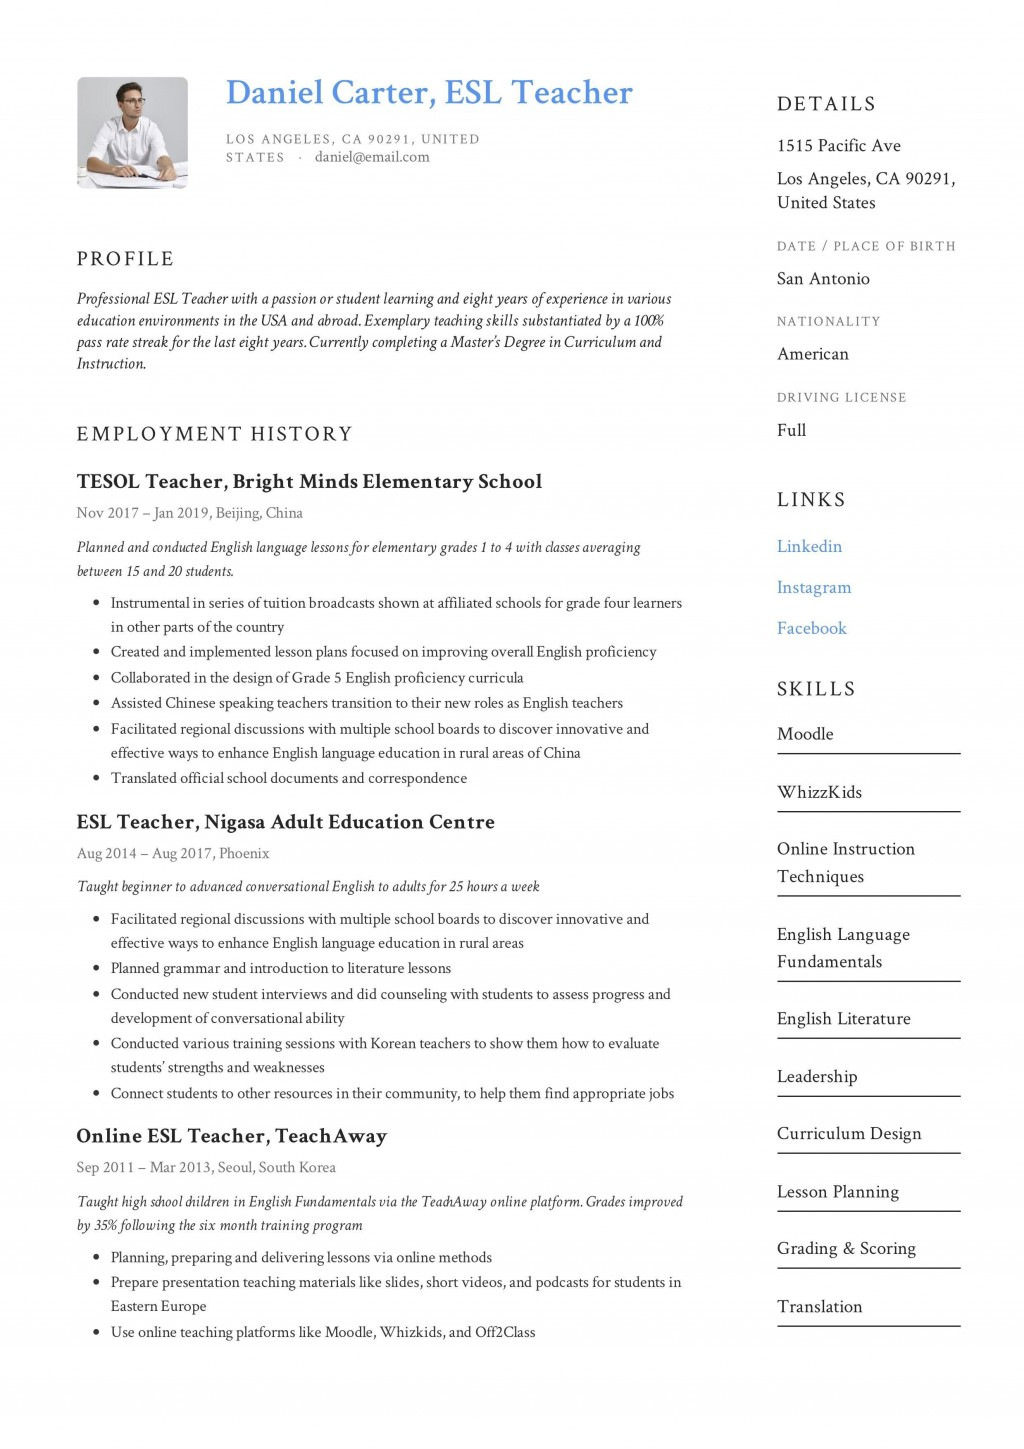 000 Awful Resume Example For Teaching Job Inspiration  Jobs Format Sample Curriculum Vitae Profession In IndiaLarge